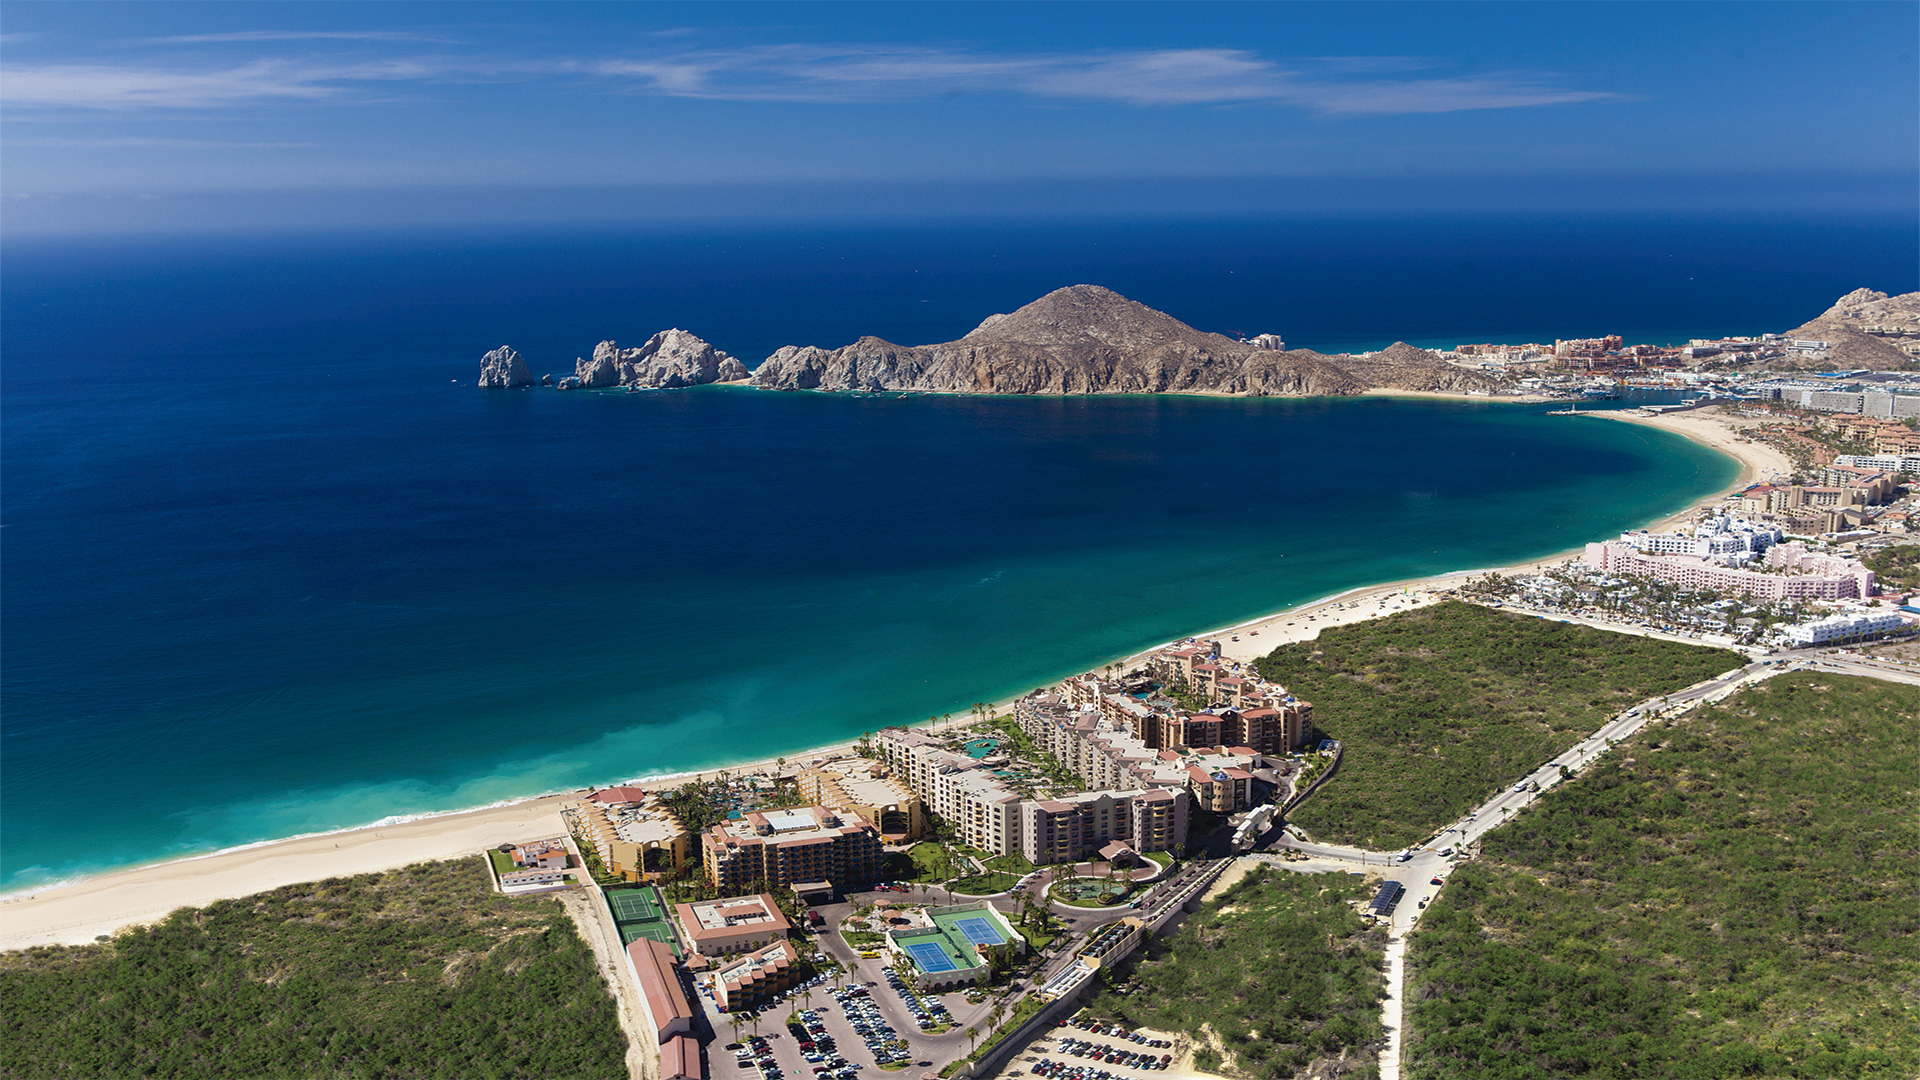 Cabo San Lucas Resort Location